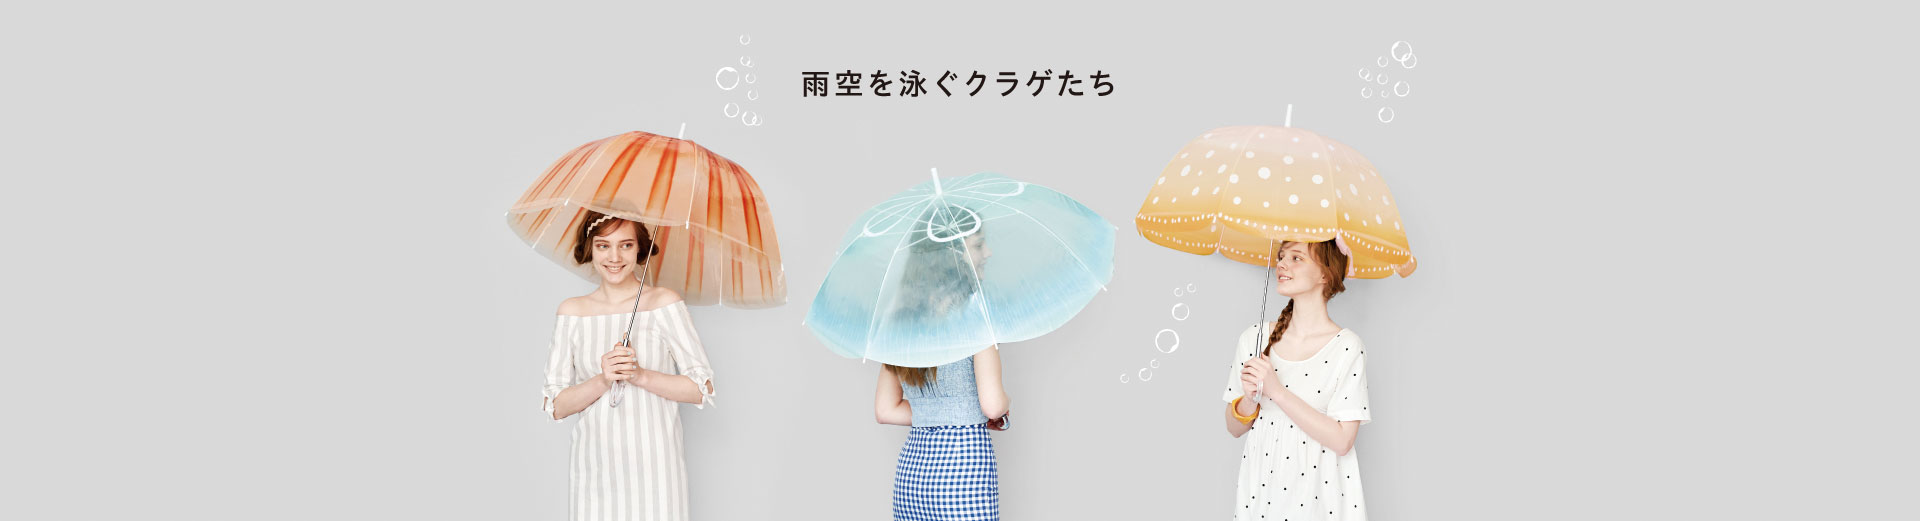 YOU+MORE! 雨空を泳ぐ ミズクラゲの傘